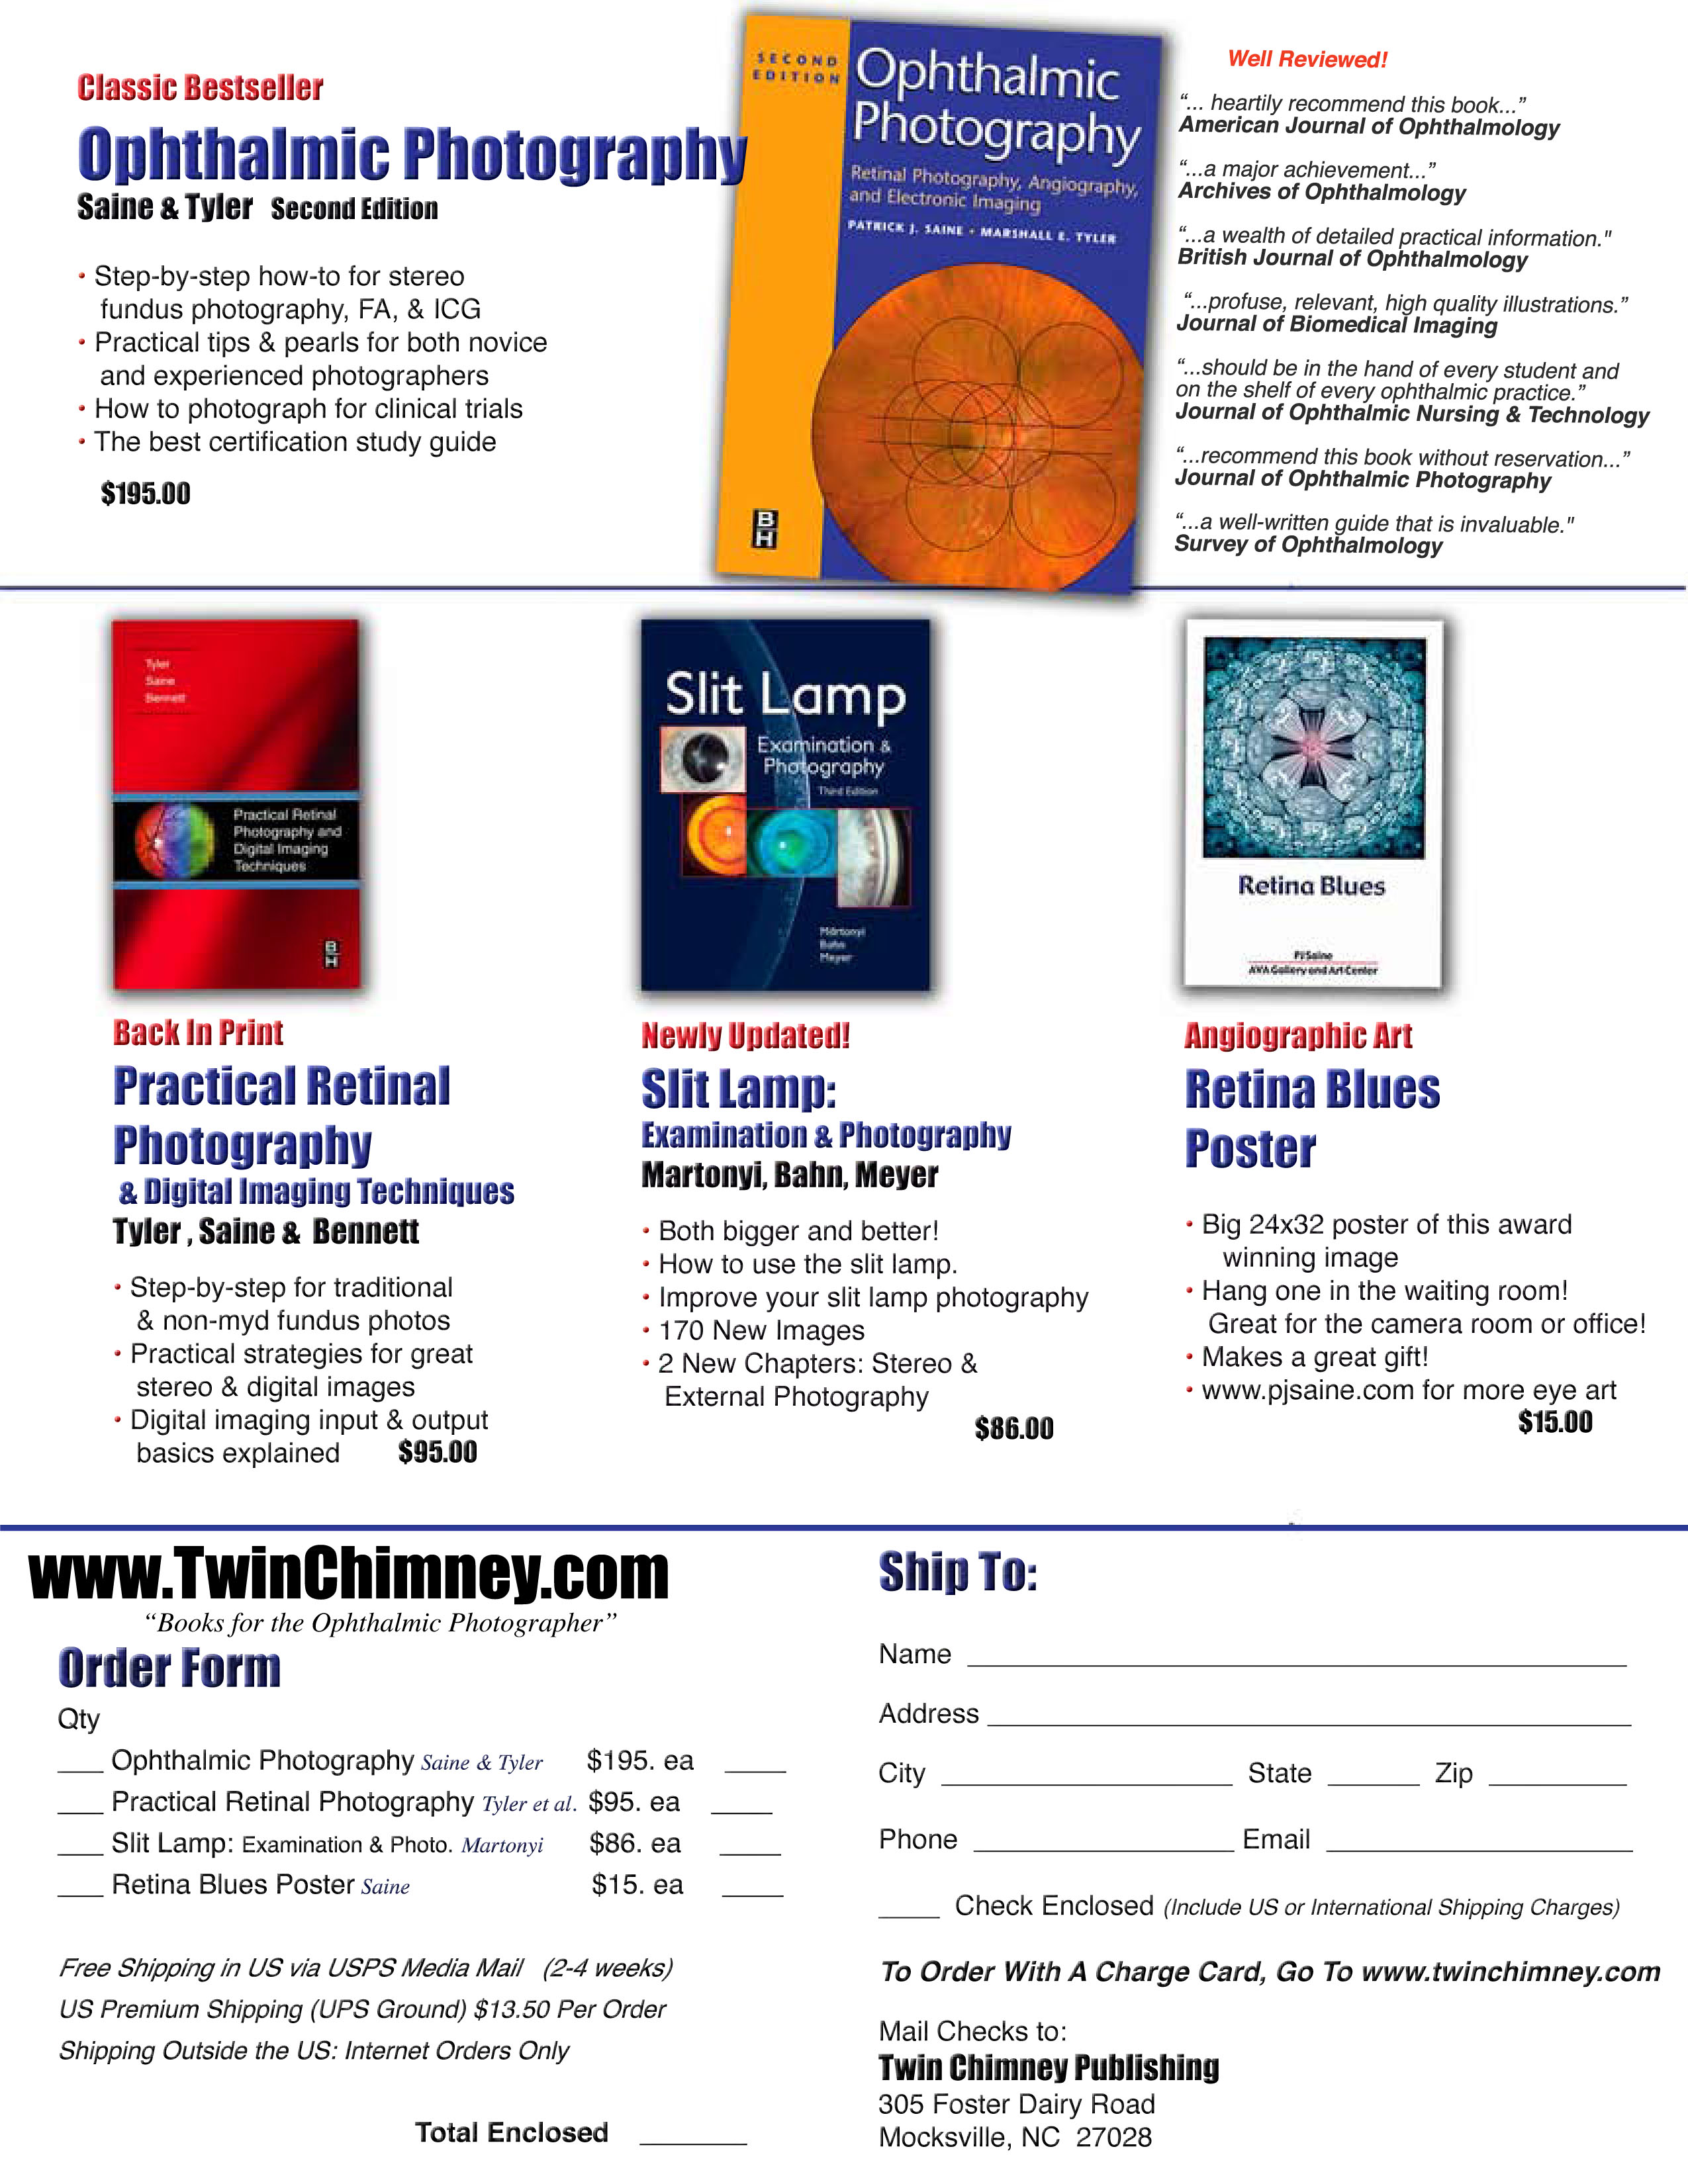 Twin Chimney Publishing: Order form - Books for the Ophthalmic